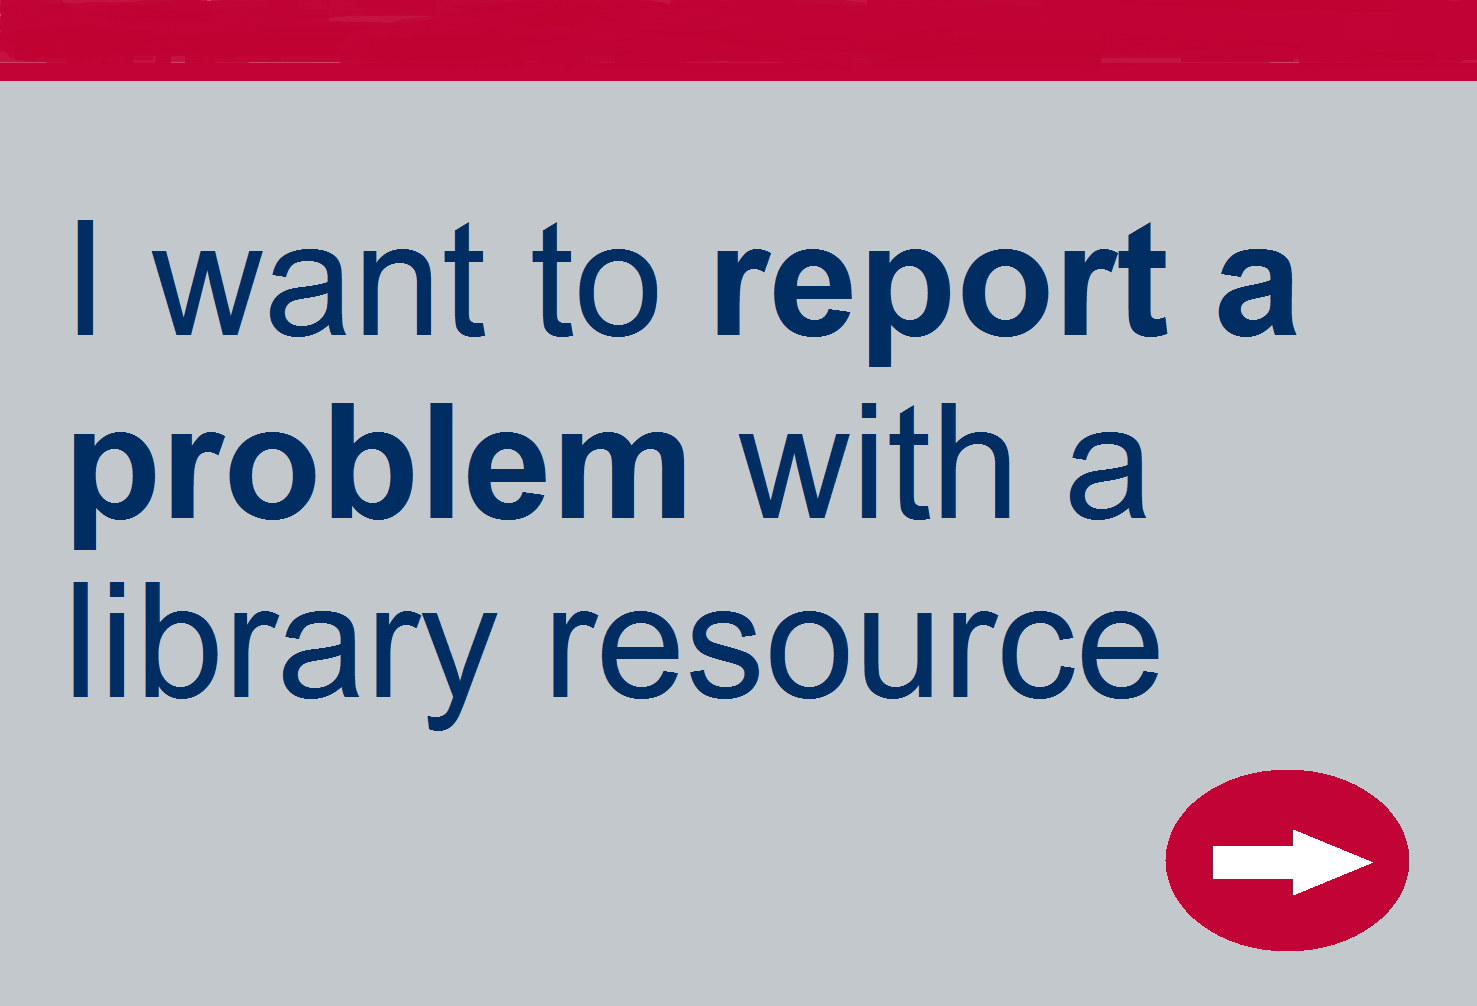 Want to report a problem with a library resource